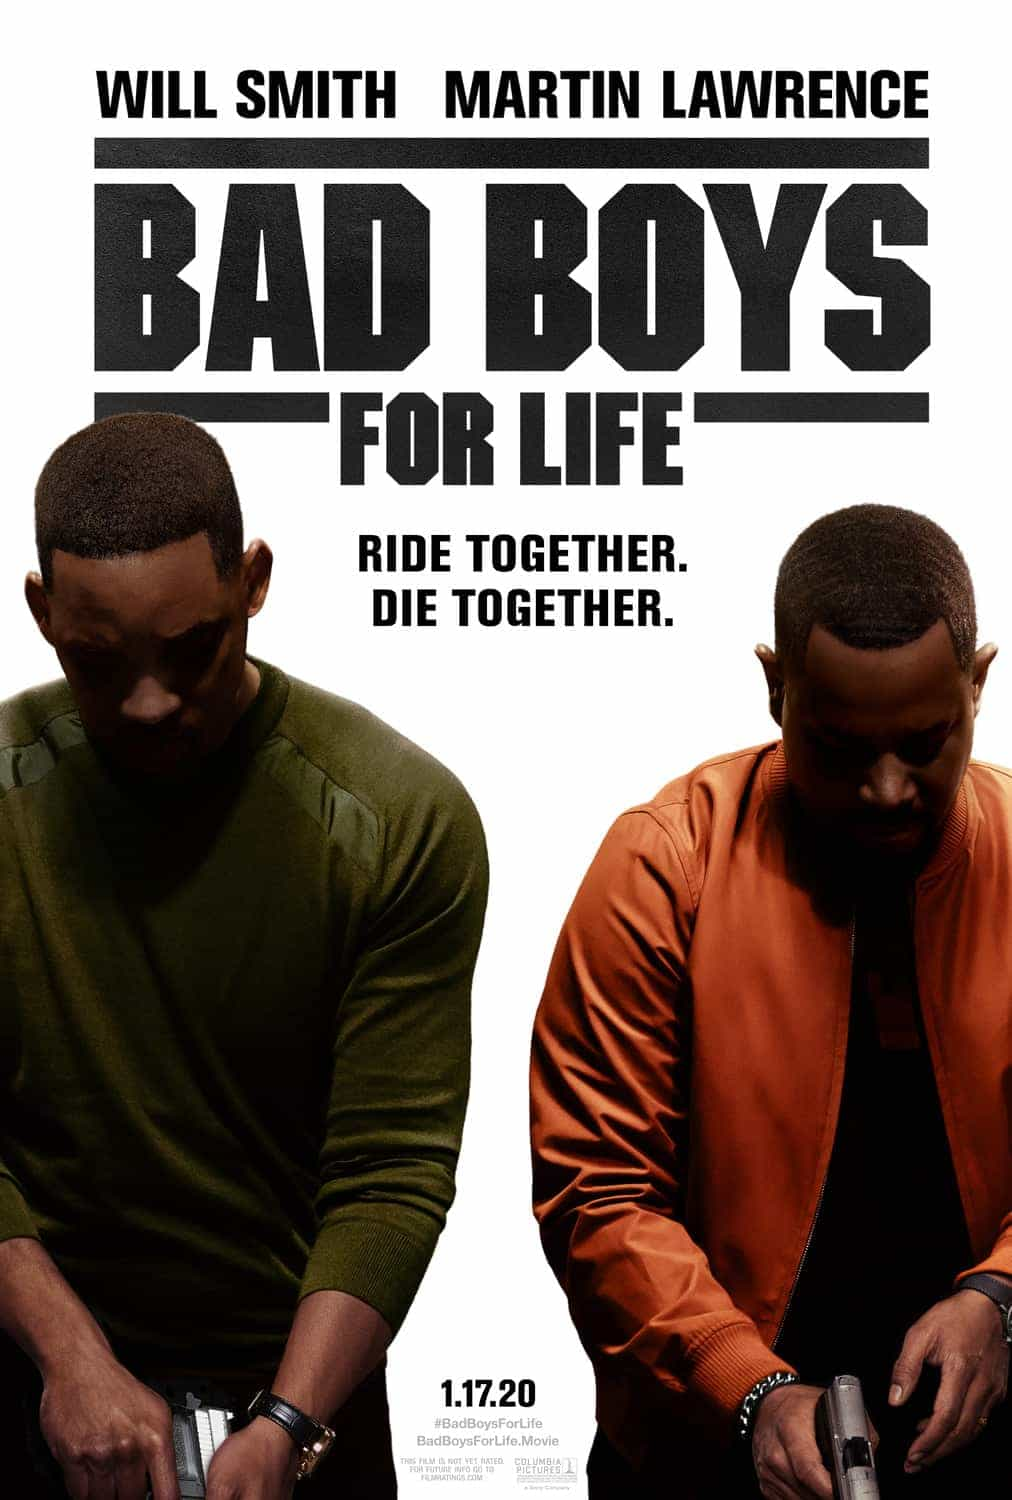 Martin Lawrence and Will Smith are together again in the new trailer for the third bad Boys movie